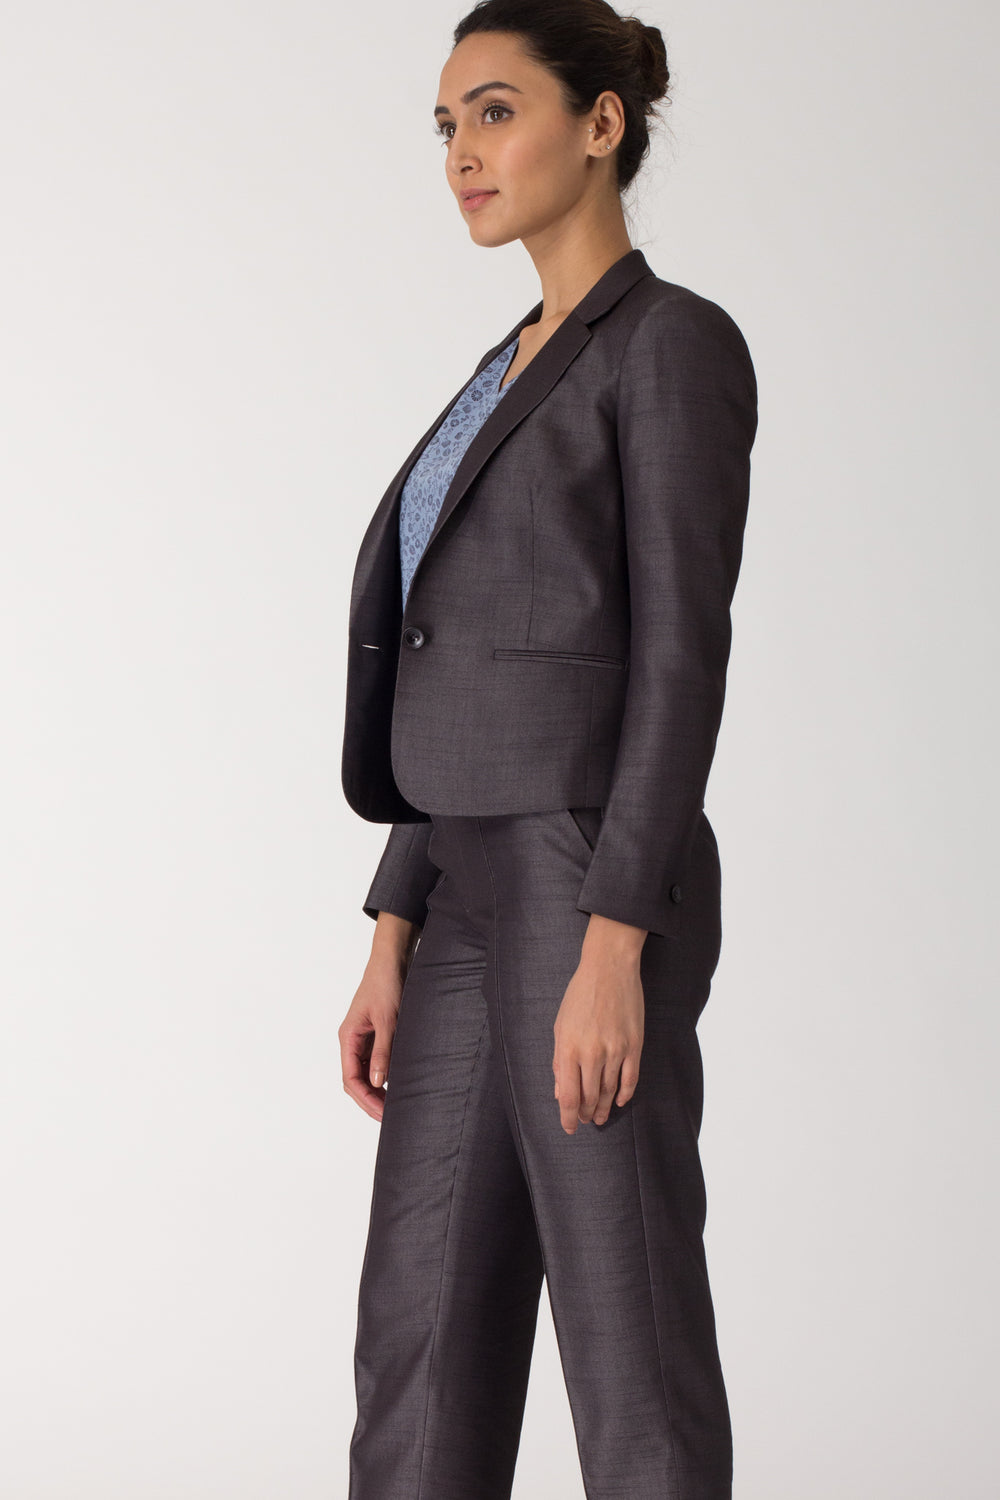 Dark Grey Formal Blazer Suit for work. Buy stylish office suits and professional looks online at www.intermod.in